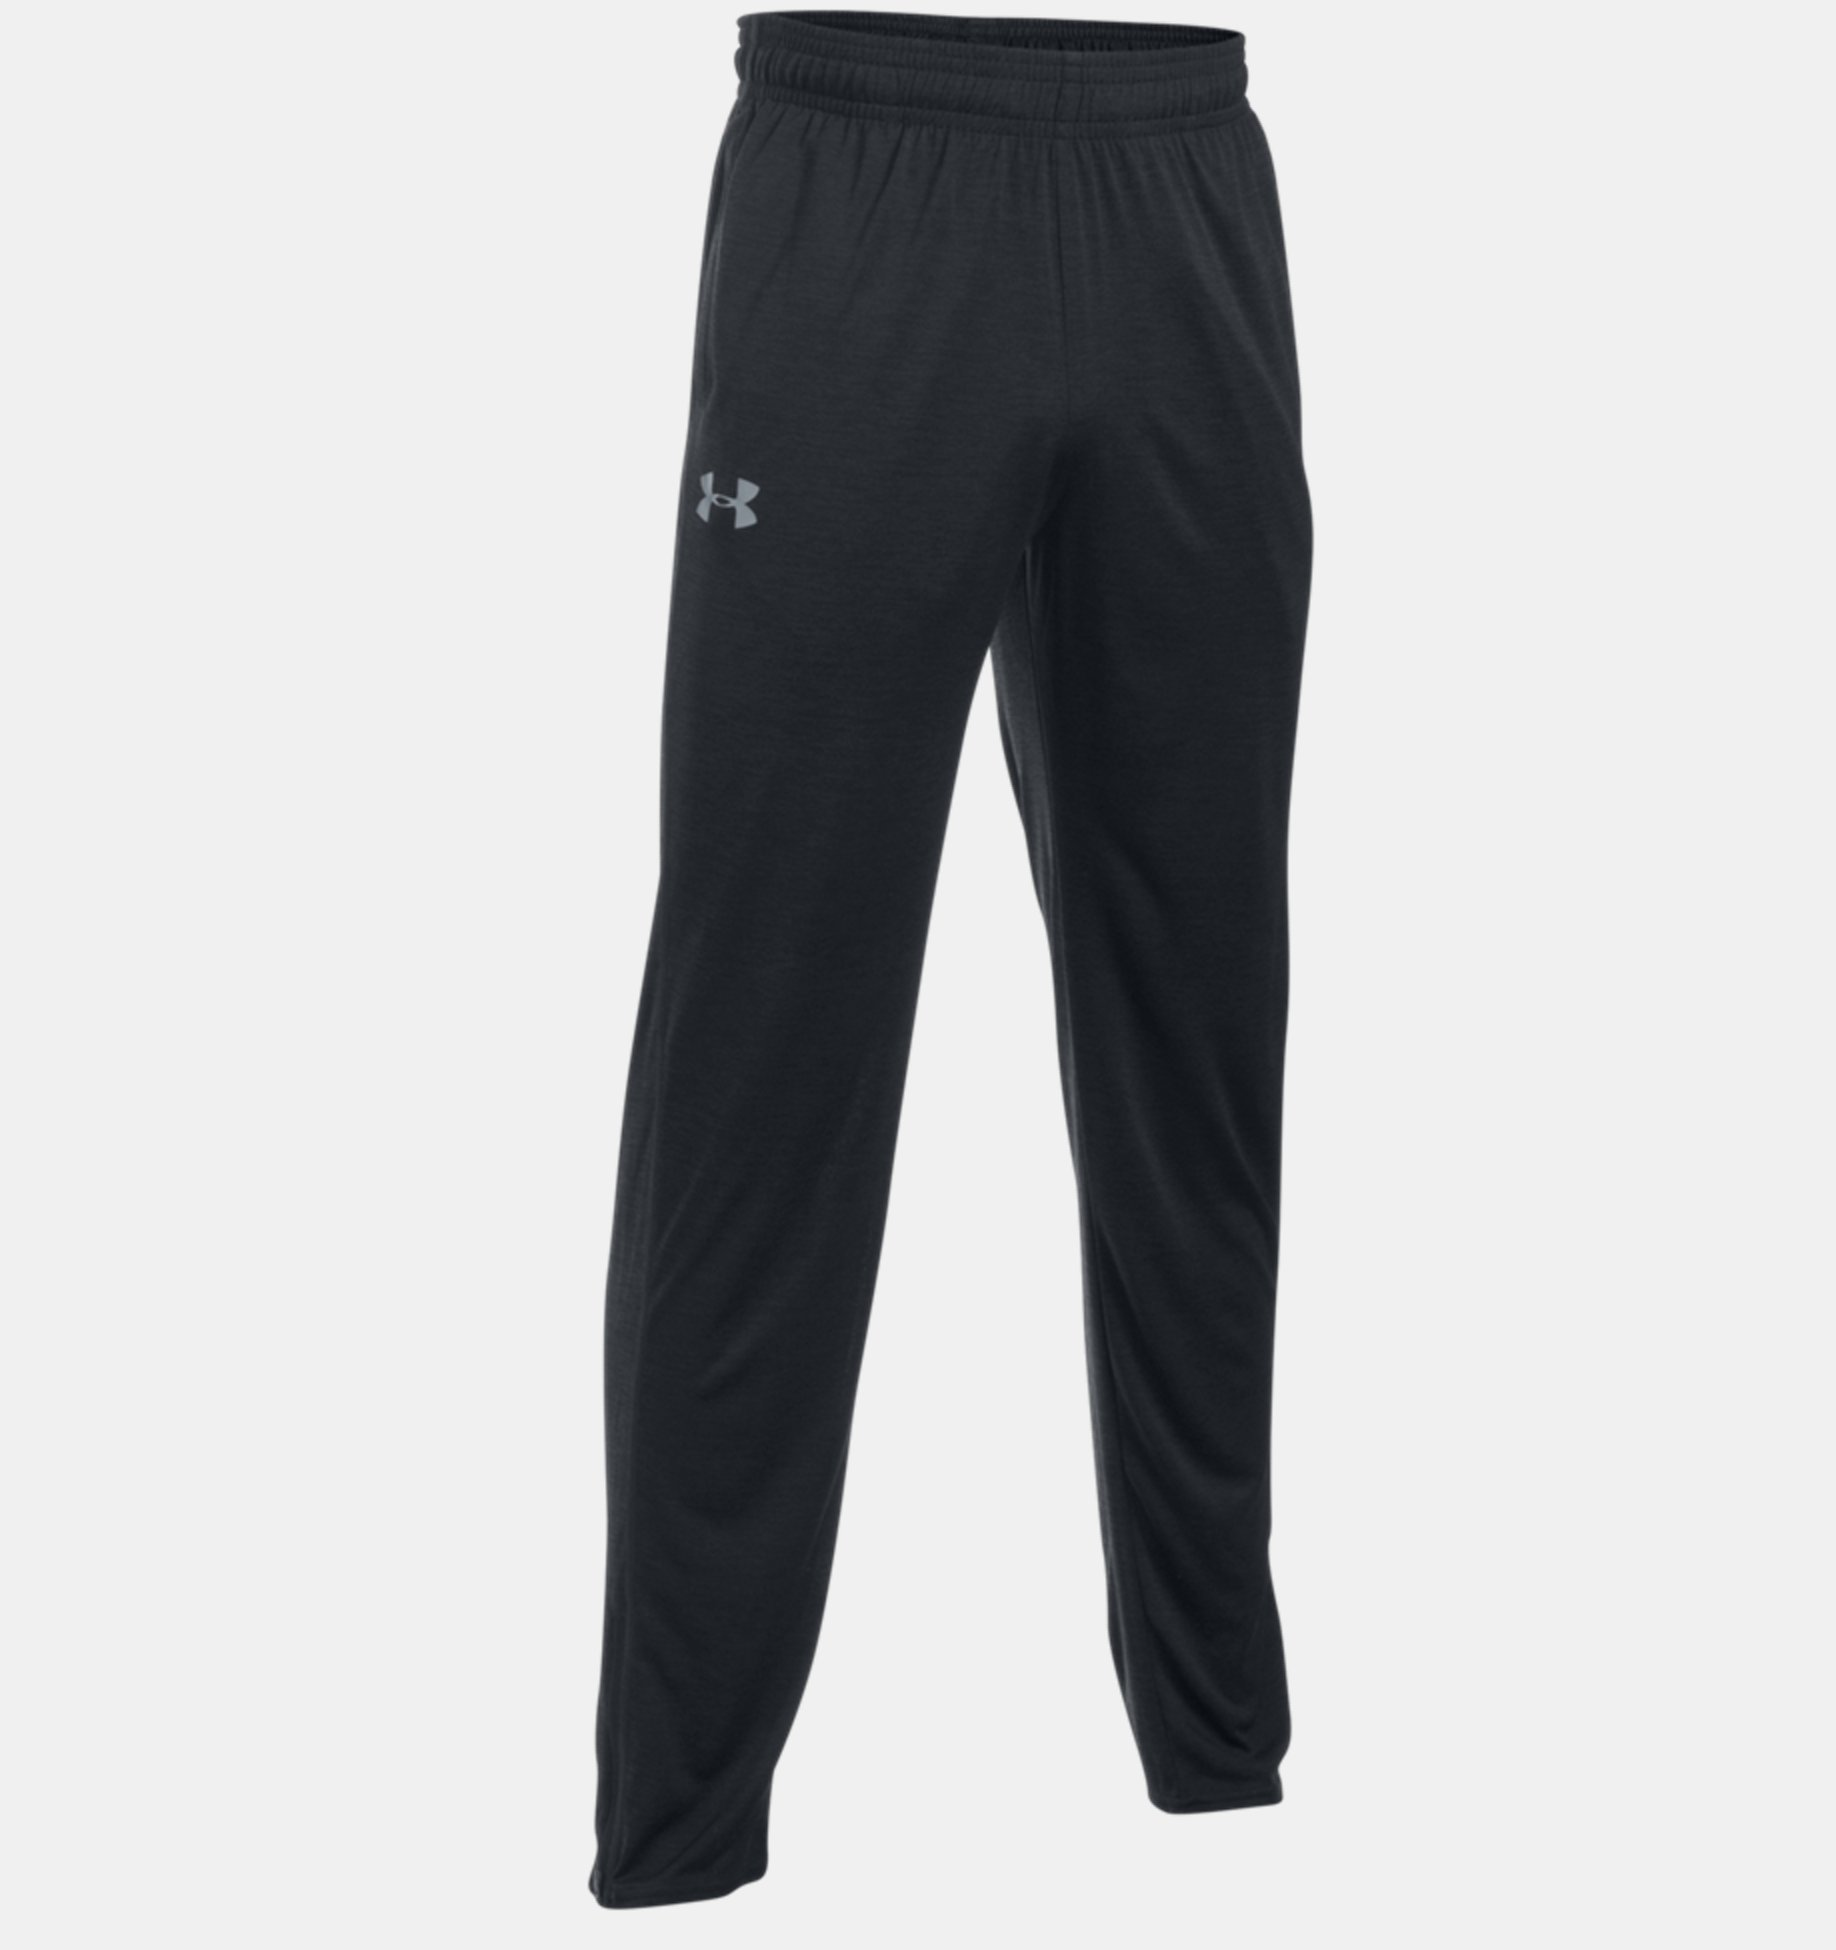 Tepláky Under Armour Tech™ Trousers, sivé